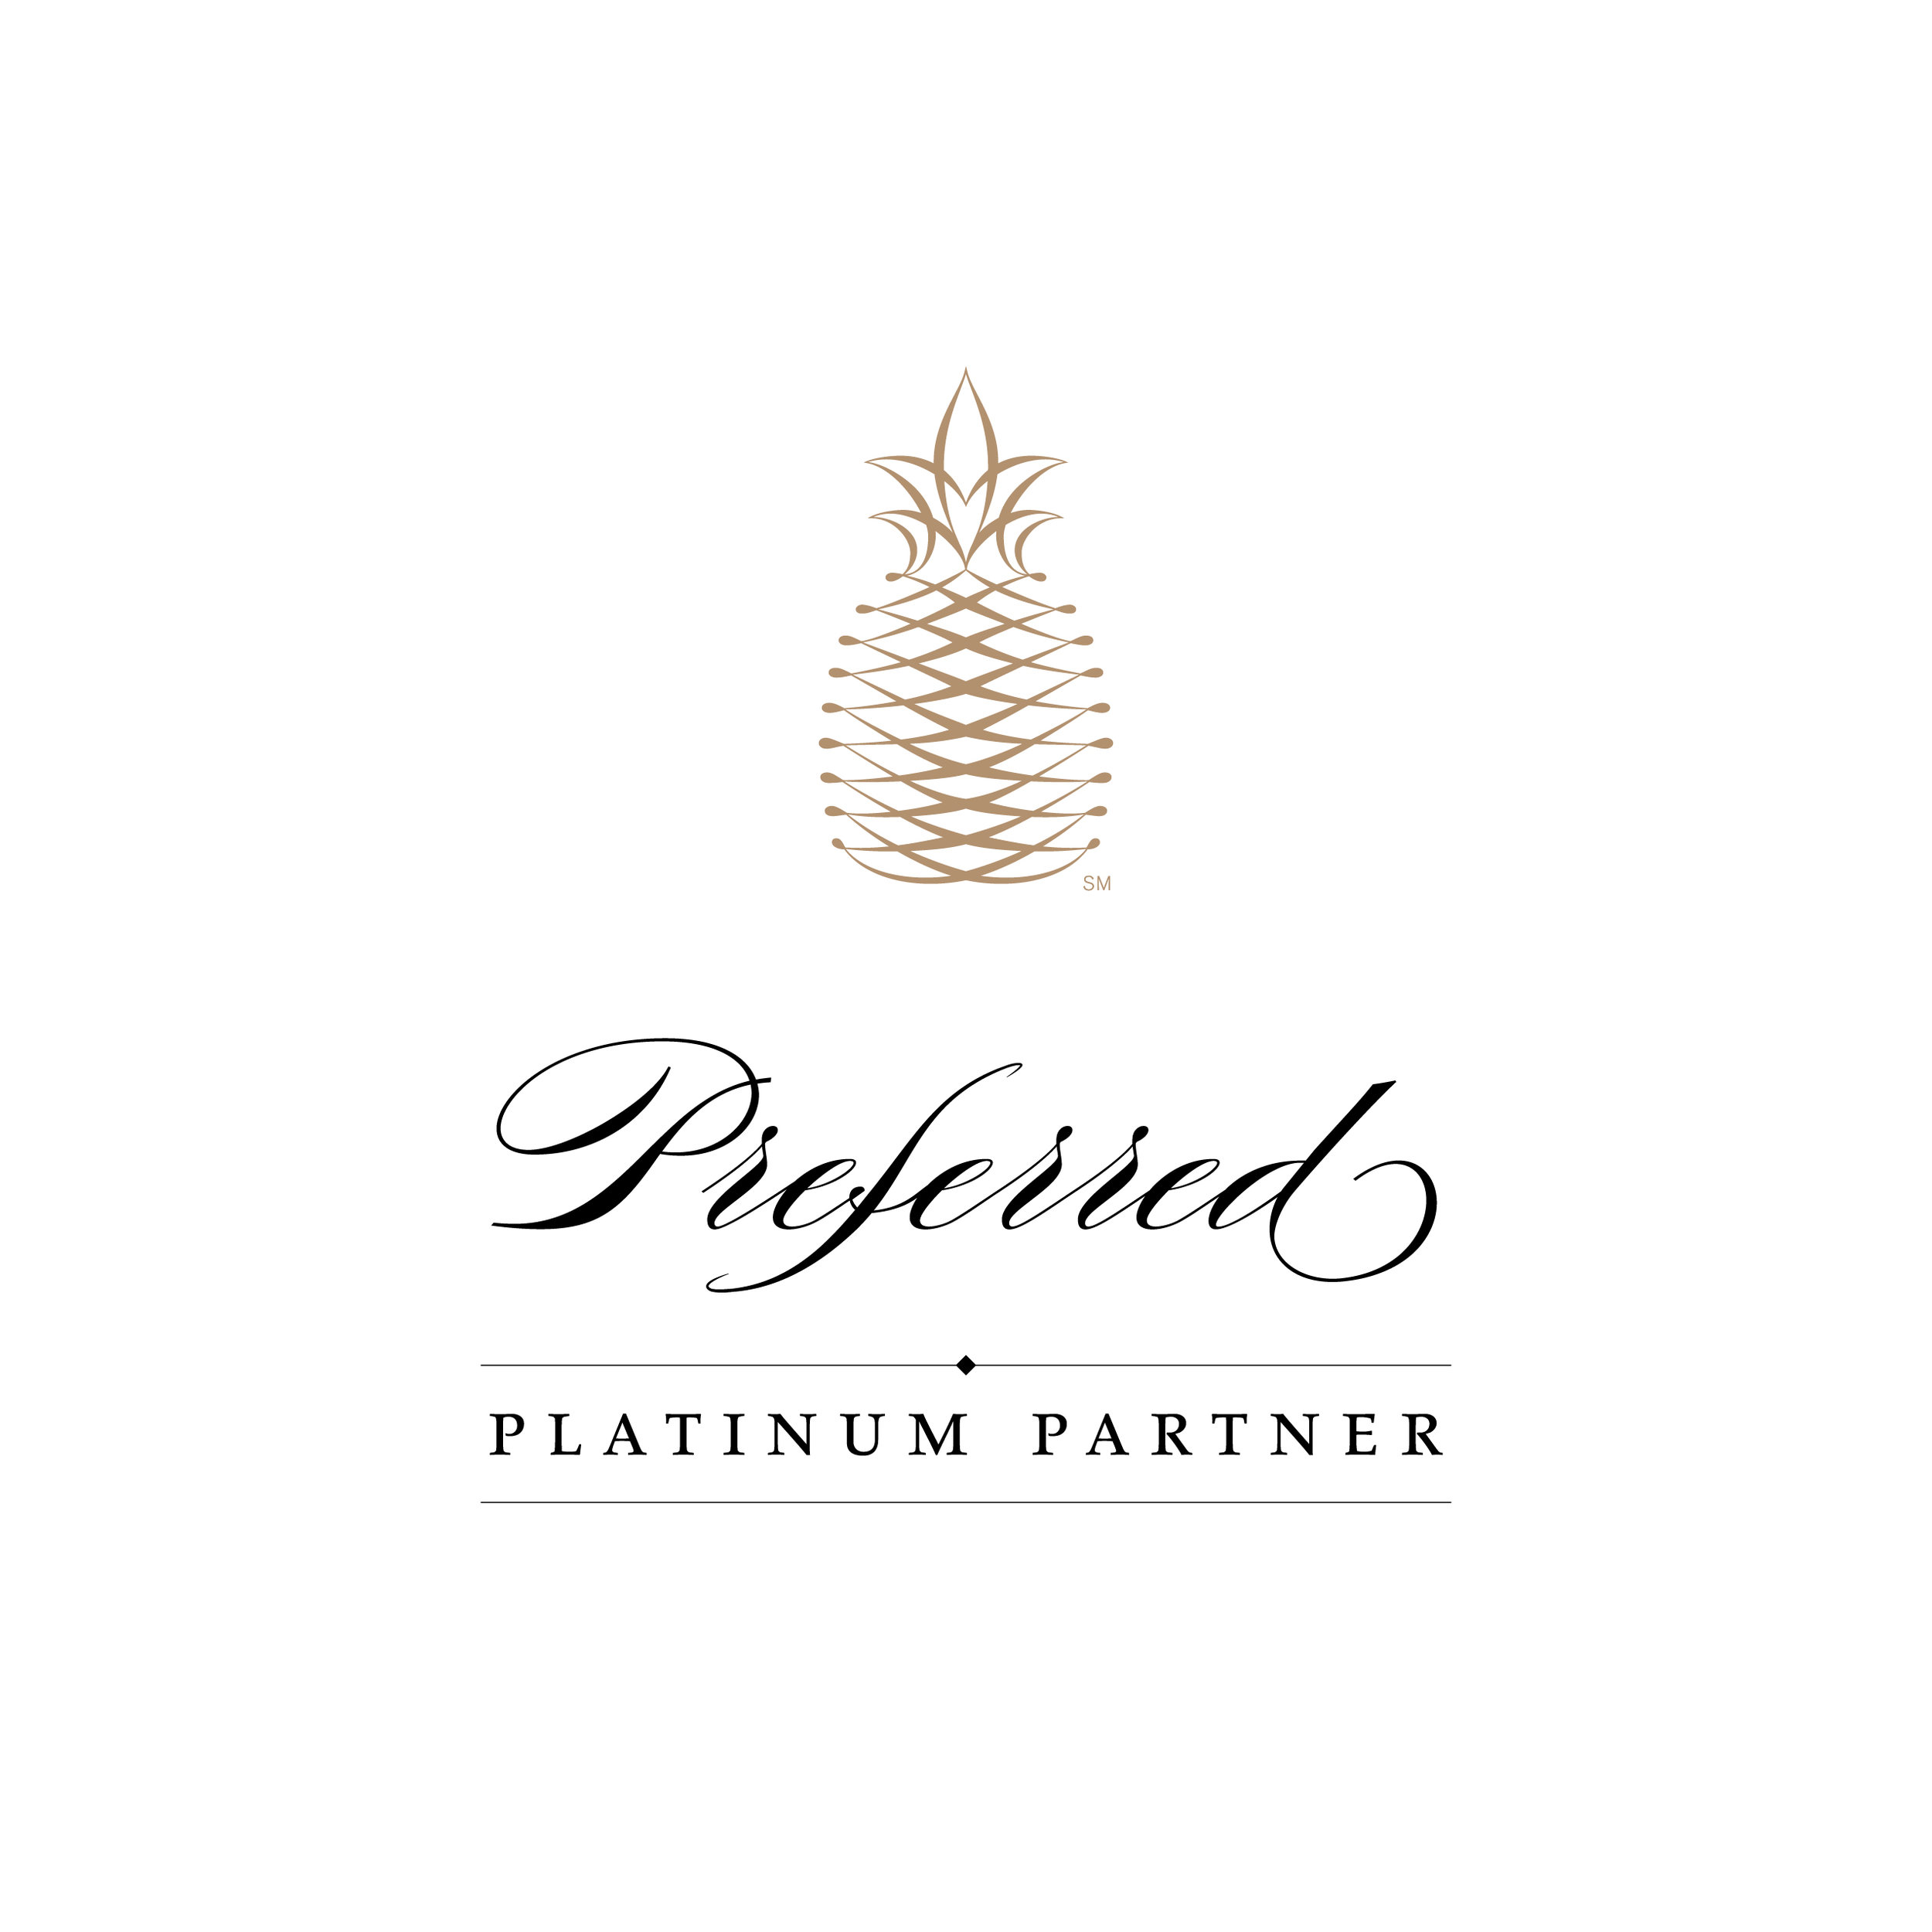 Preferred Platinum Partner Logo_Large_FNL.JPG